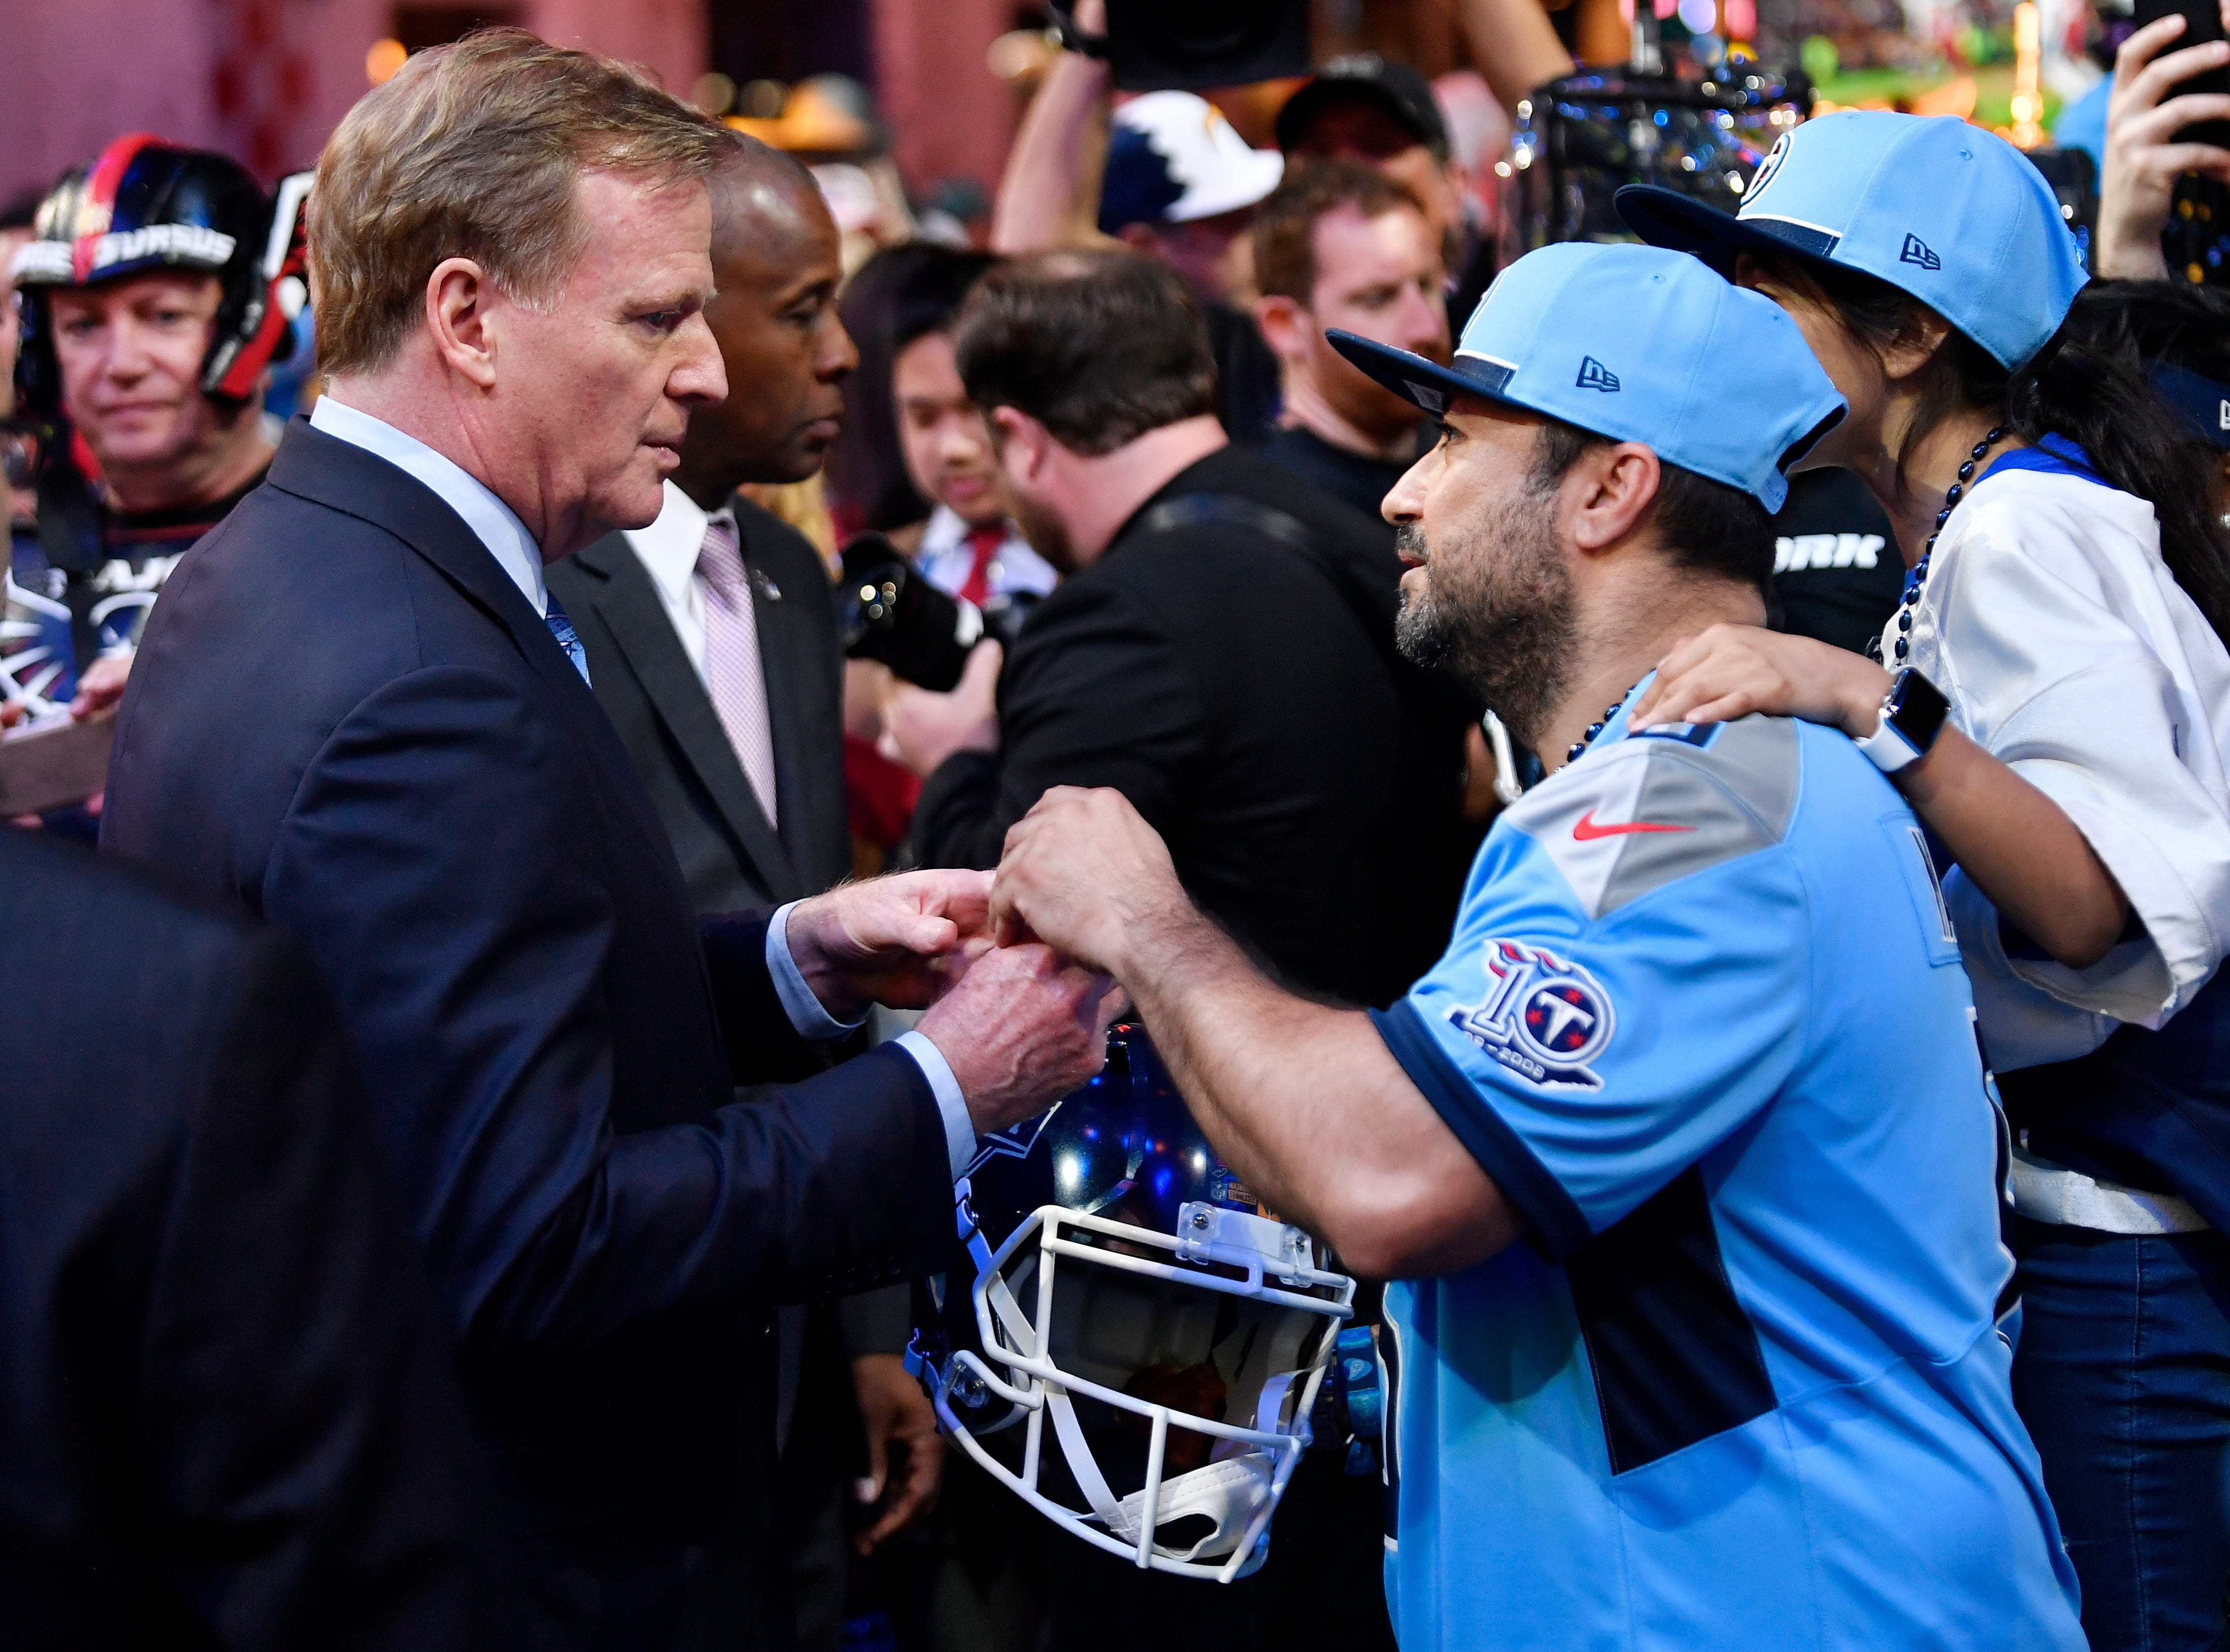 NFL Commissioner Roger Goodell signs an autograph for Titans fan Juan Delgado during the first round of the NFL Draft Thursday, April 25, 2019, in Nashville, Tenn.